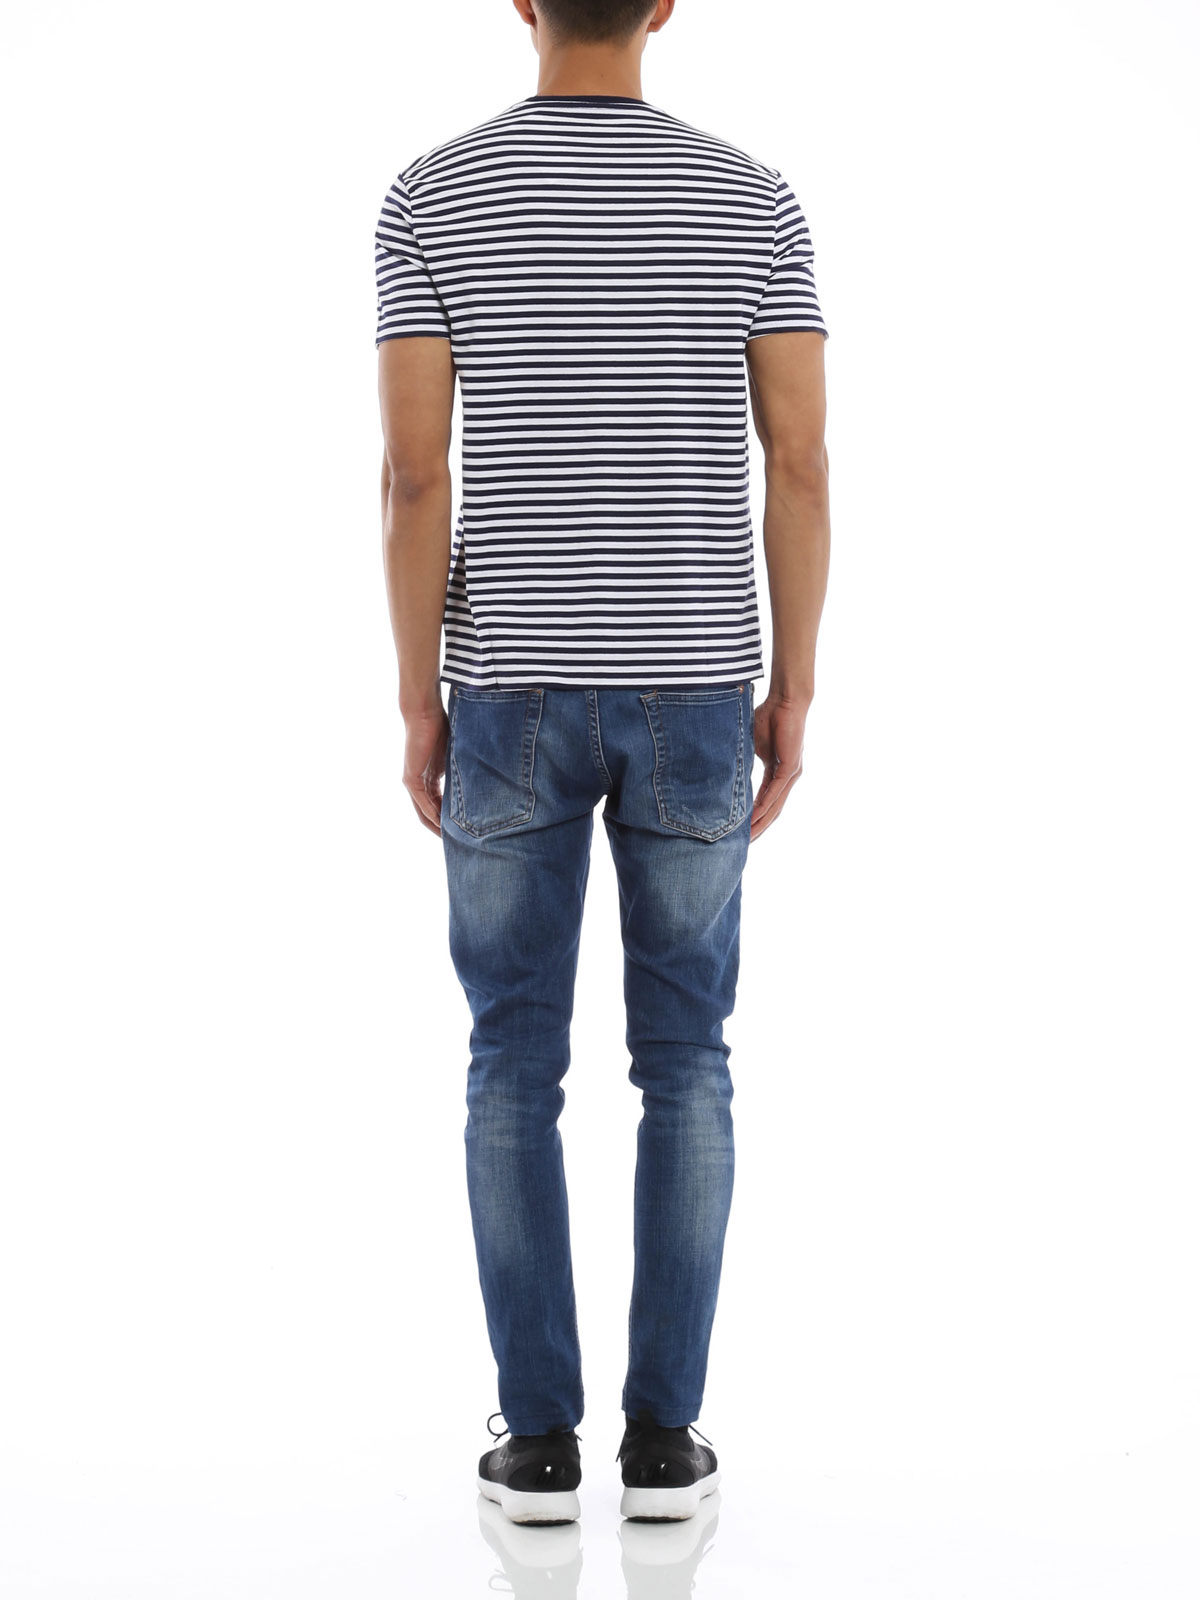 Striped cotton T-shirt by Polo Ralph Lauren - t-shirts | iKRIX